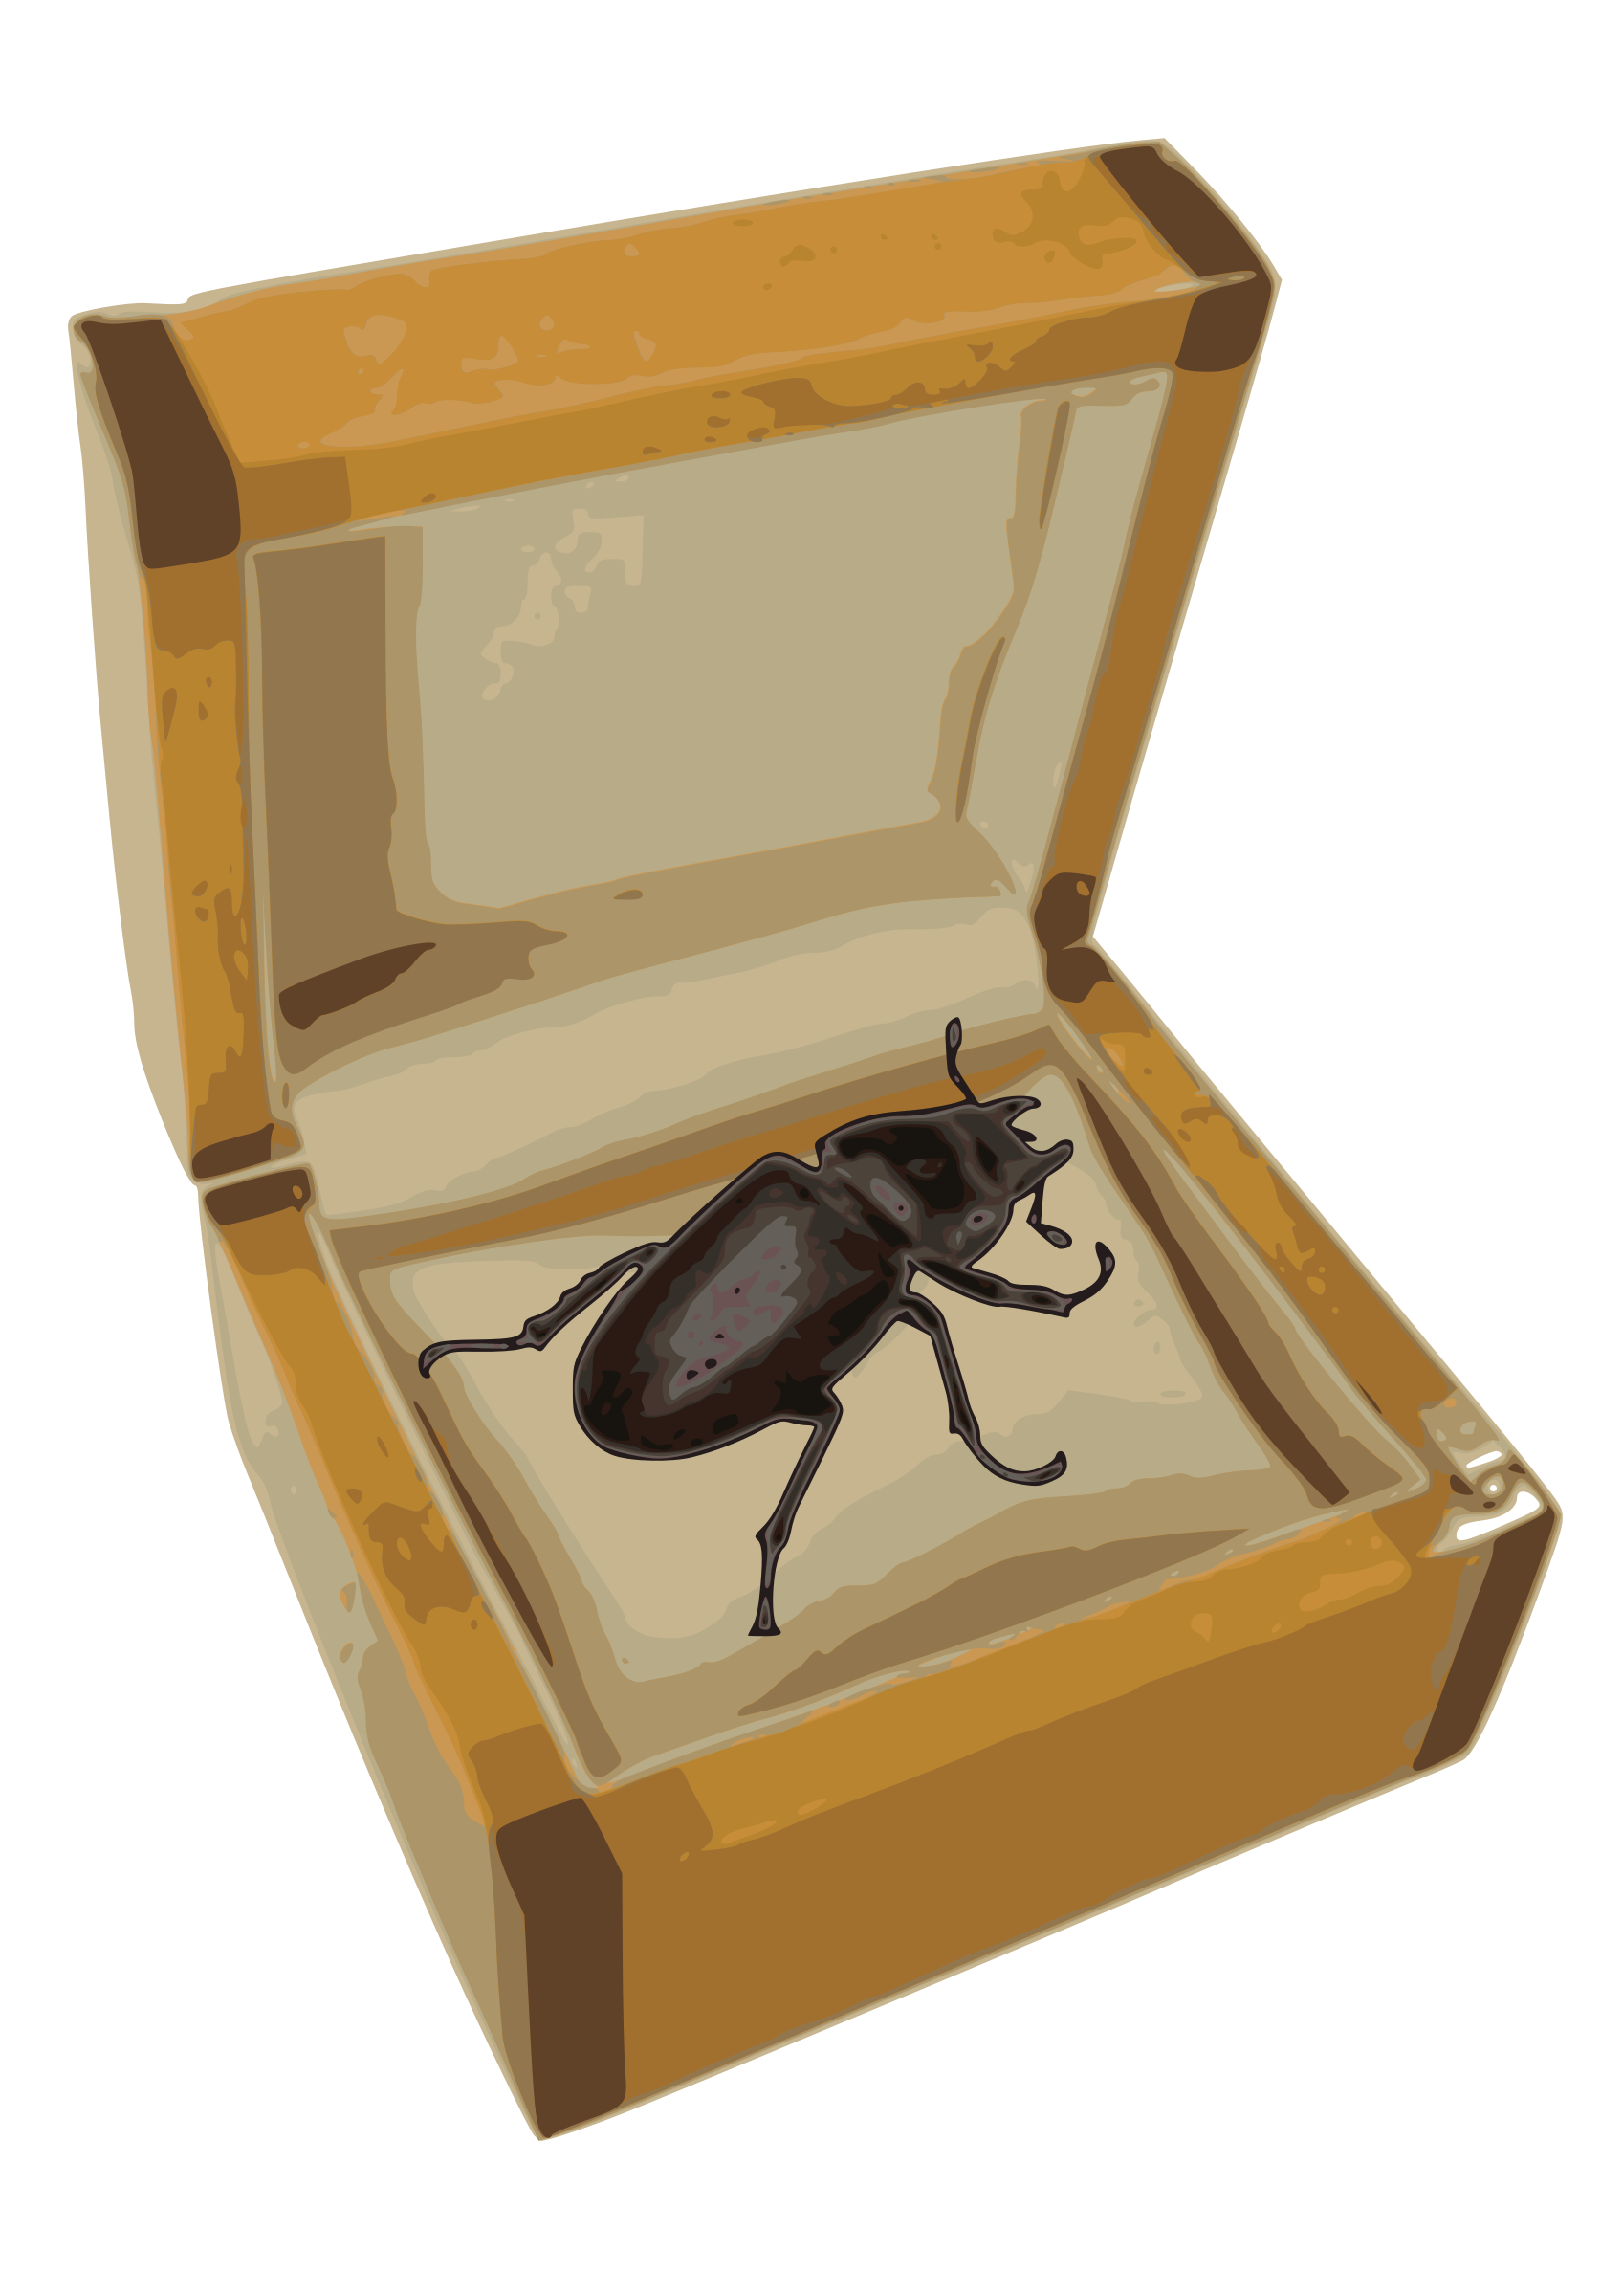 Beetle in a Box by danfreak